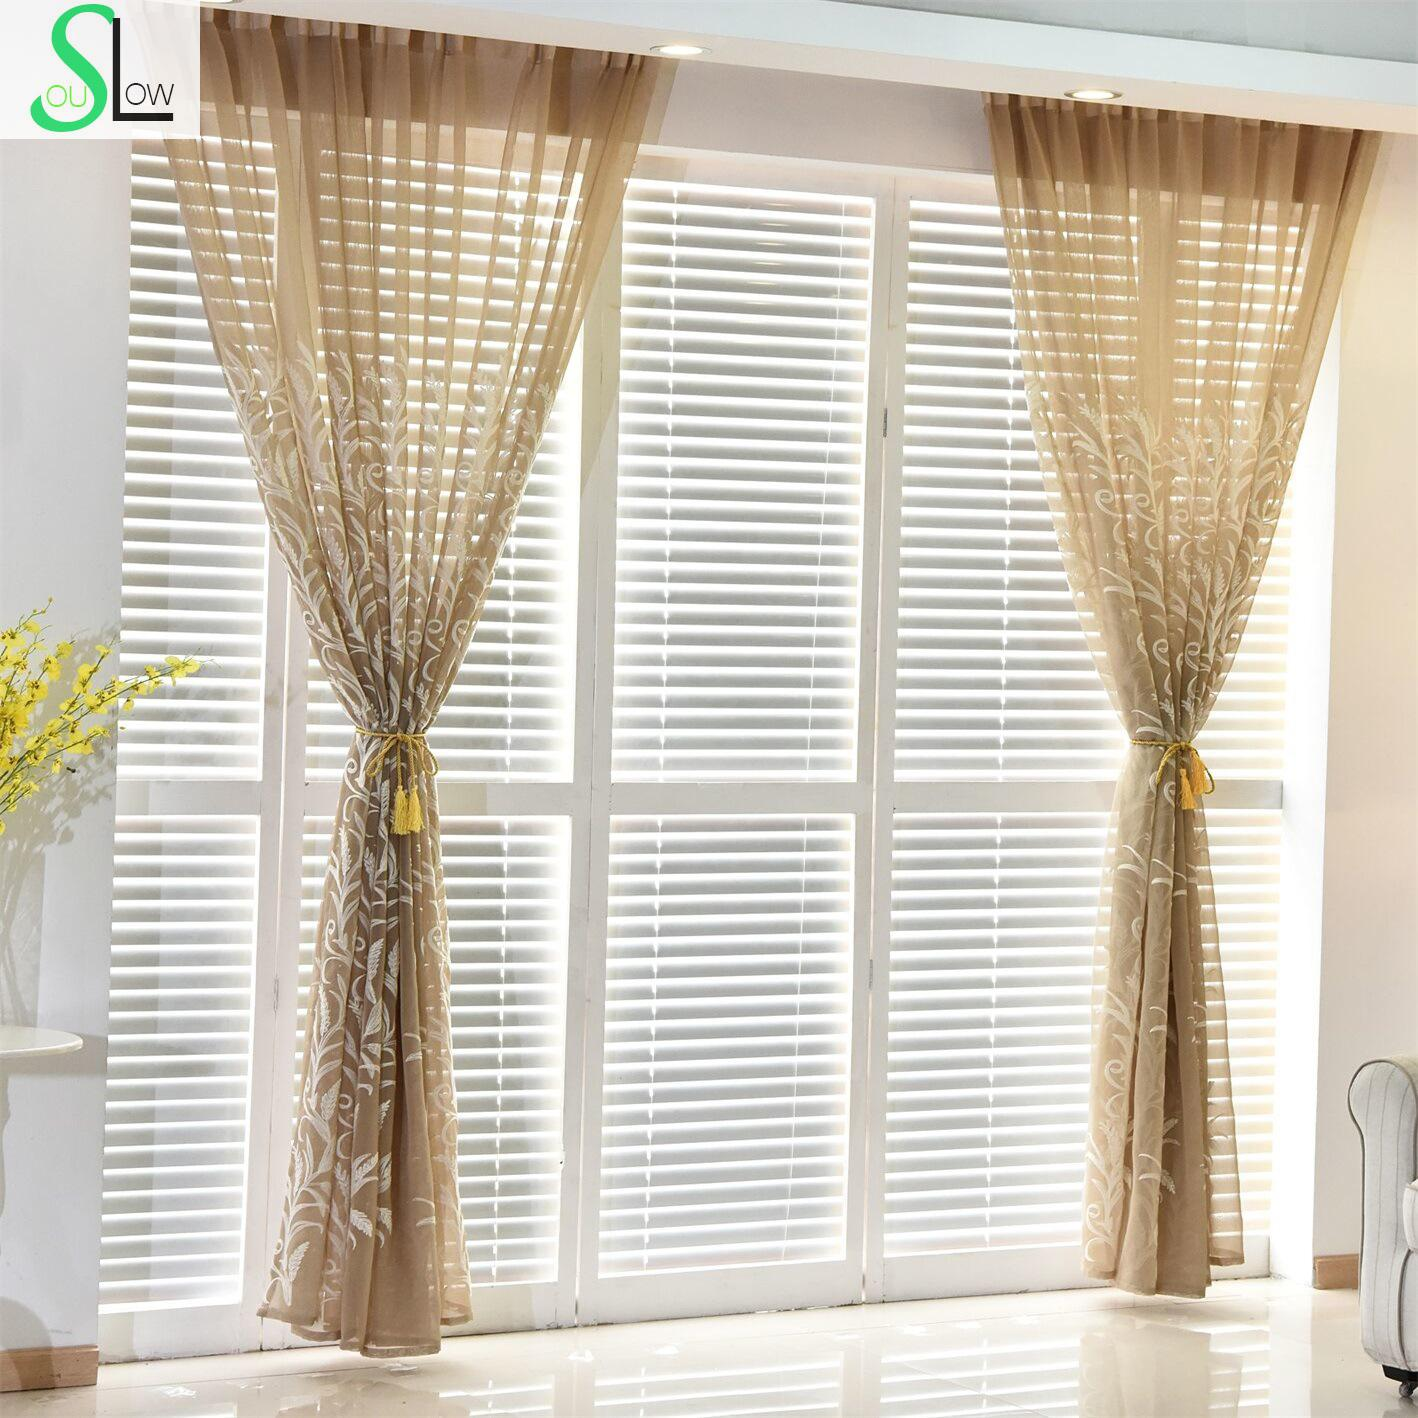 Light yellow curtains - Slow Soul White Blue Light Brown Modern Cotton Curtain Living Room Bedroom Embroidered Tulle Curtains Kitchen And For Sheers